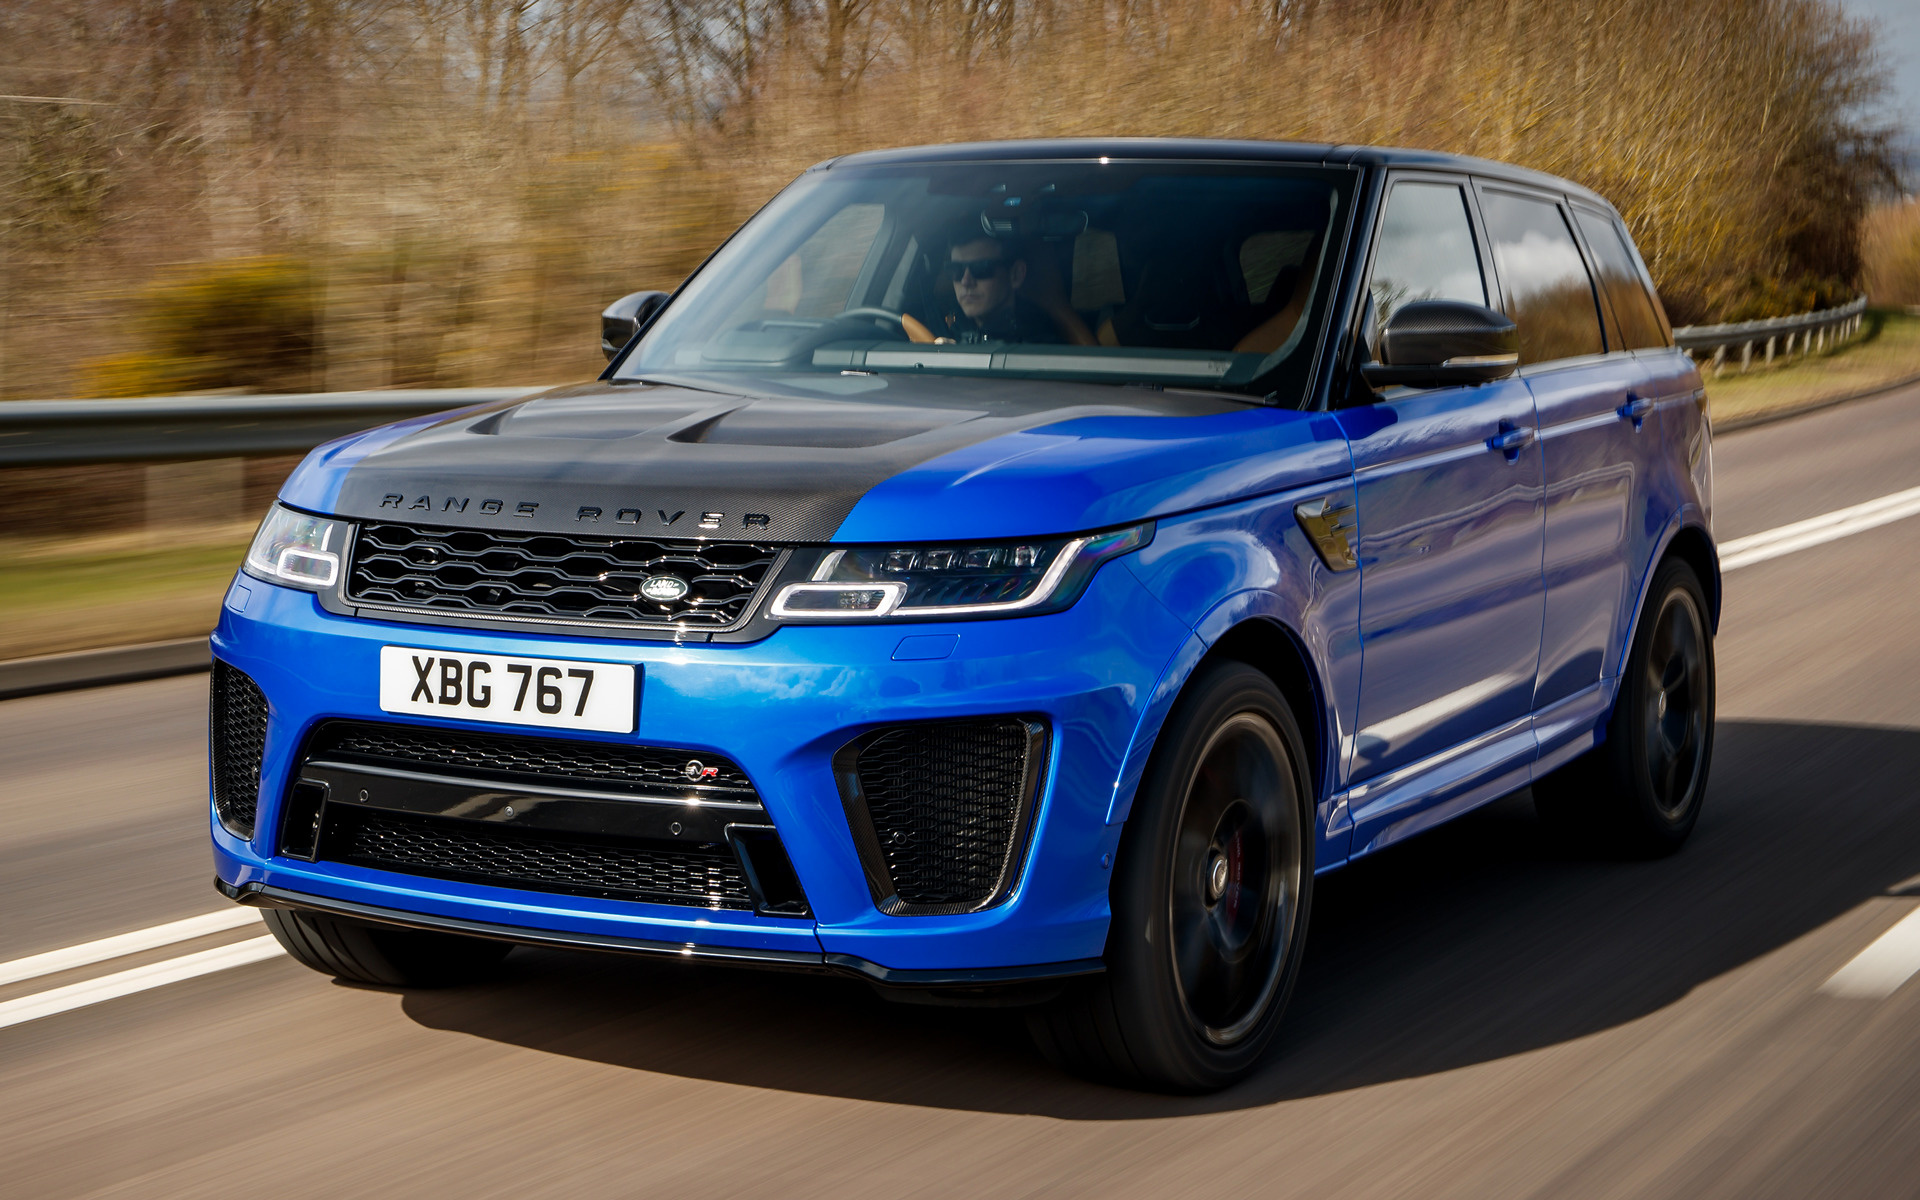 Lincoln Wallpaper Car 2018 Range Rover Sport Svr Uk Wallpapers And Hd Images